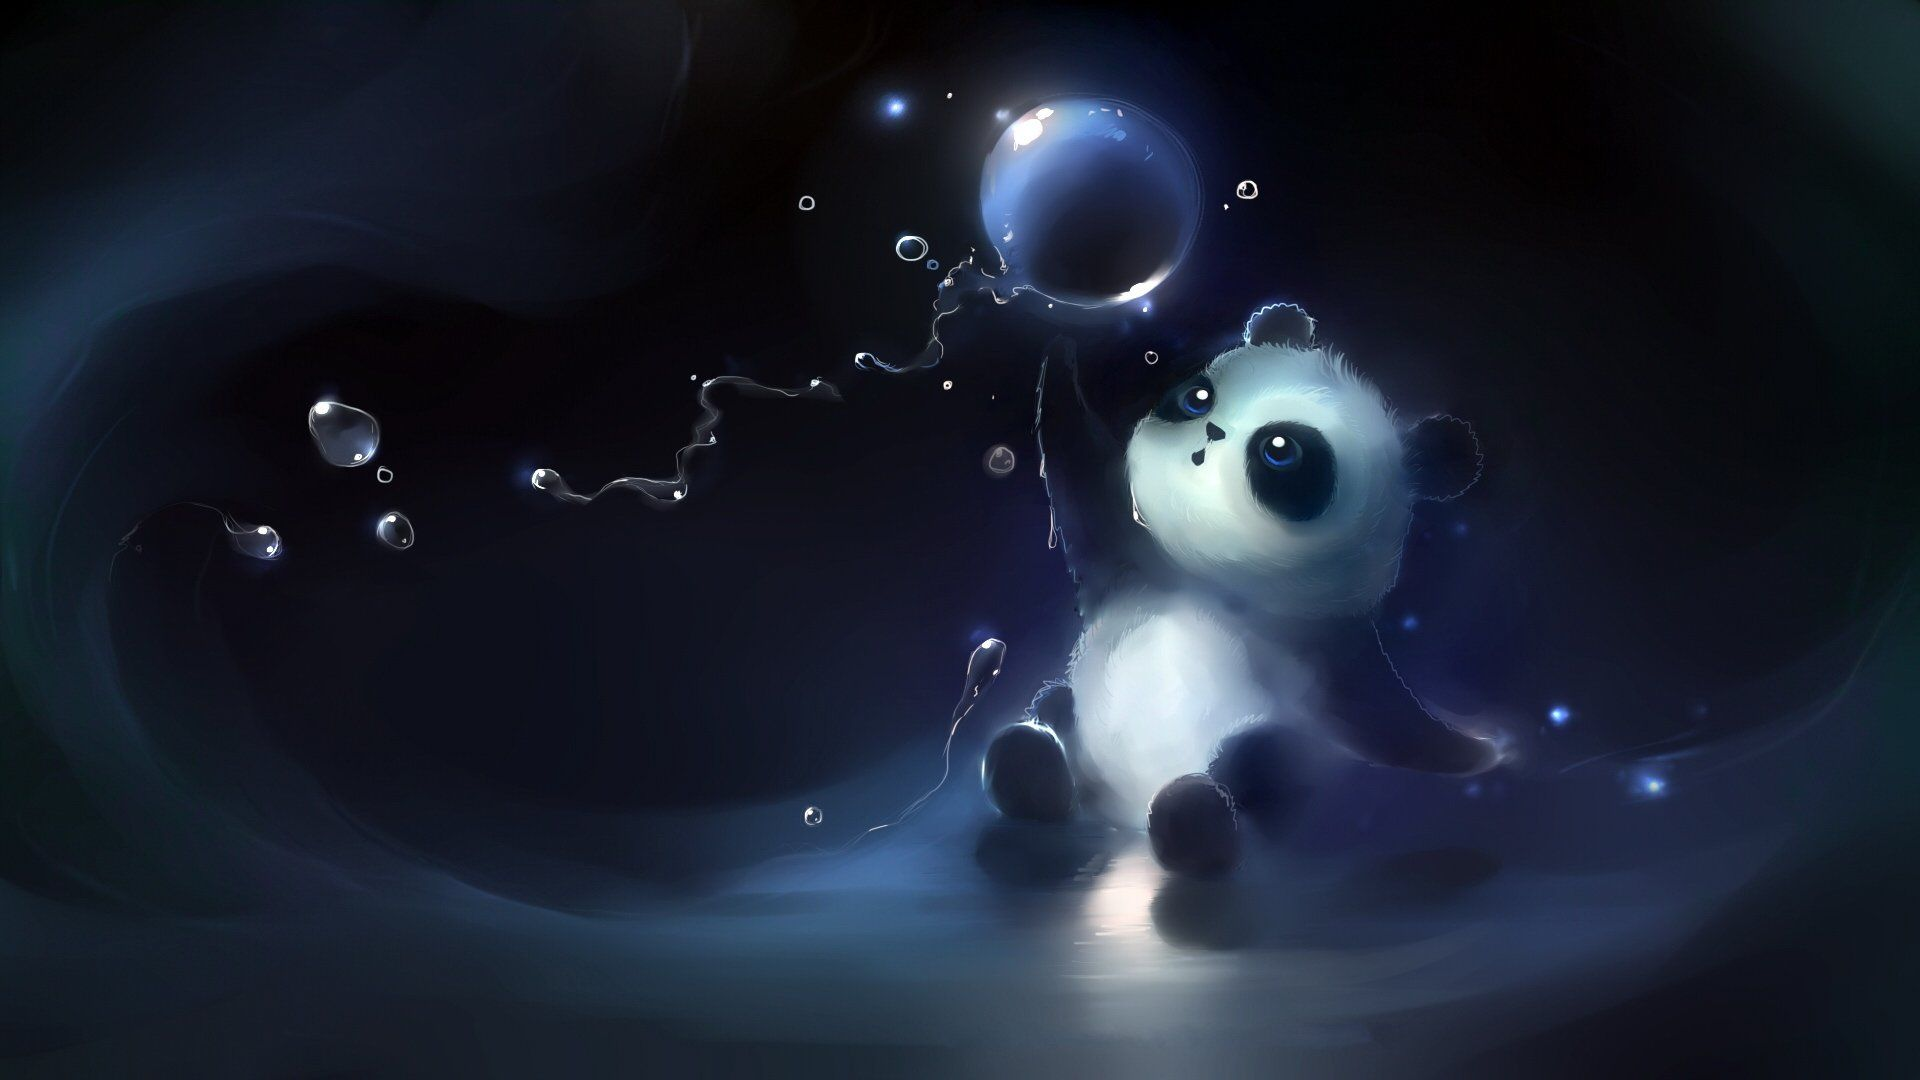 cool panda wallpaper  High Definition Panda Wallpaper HD Wallpaper 1920×1080 Panda ...